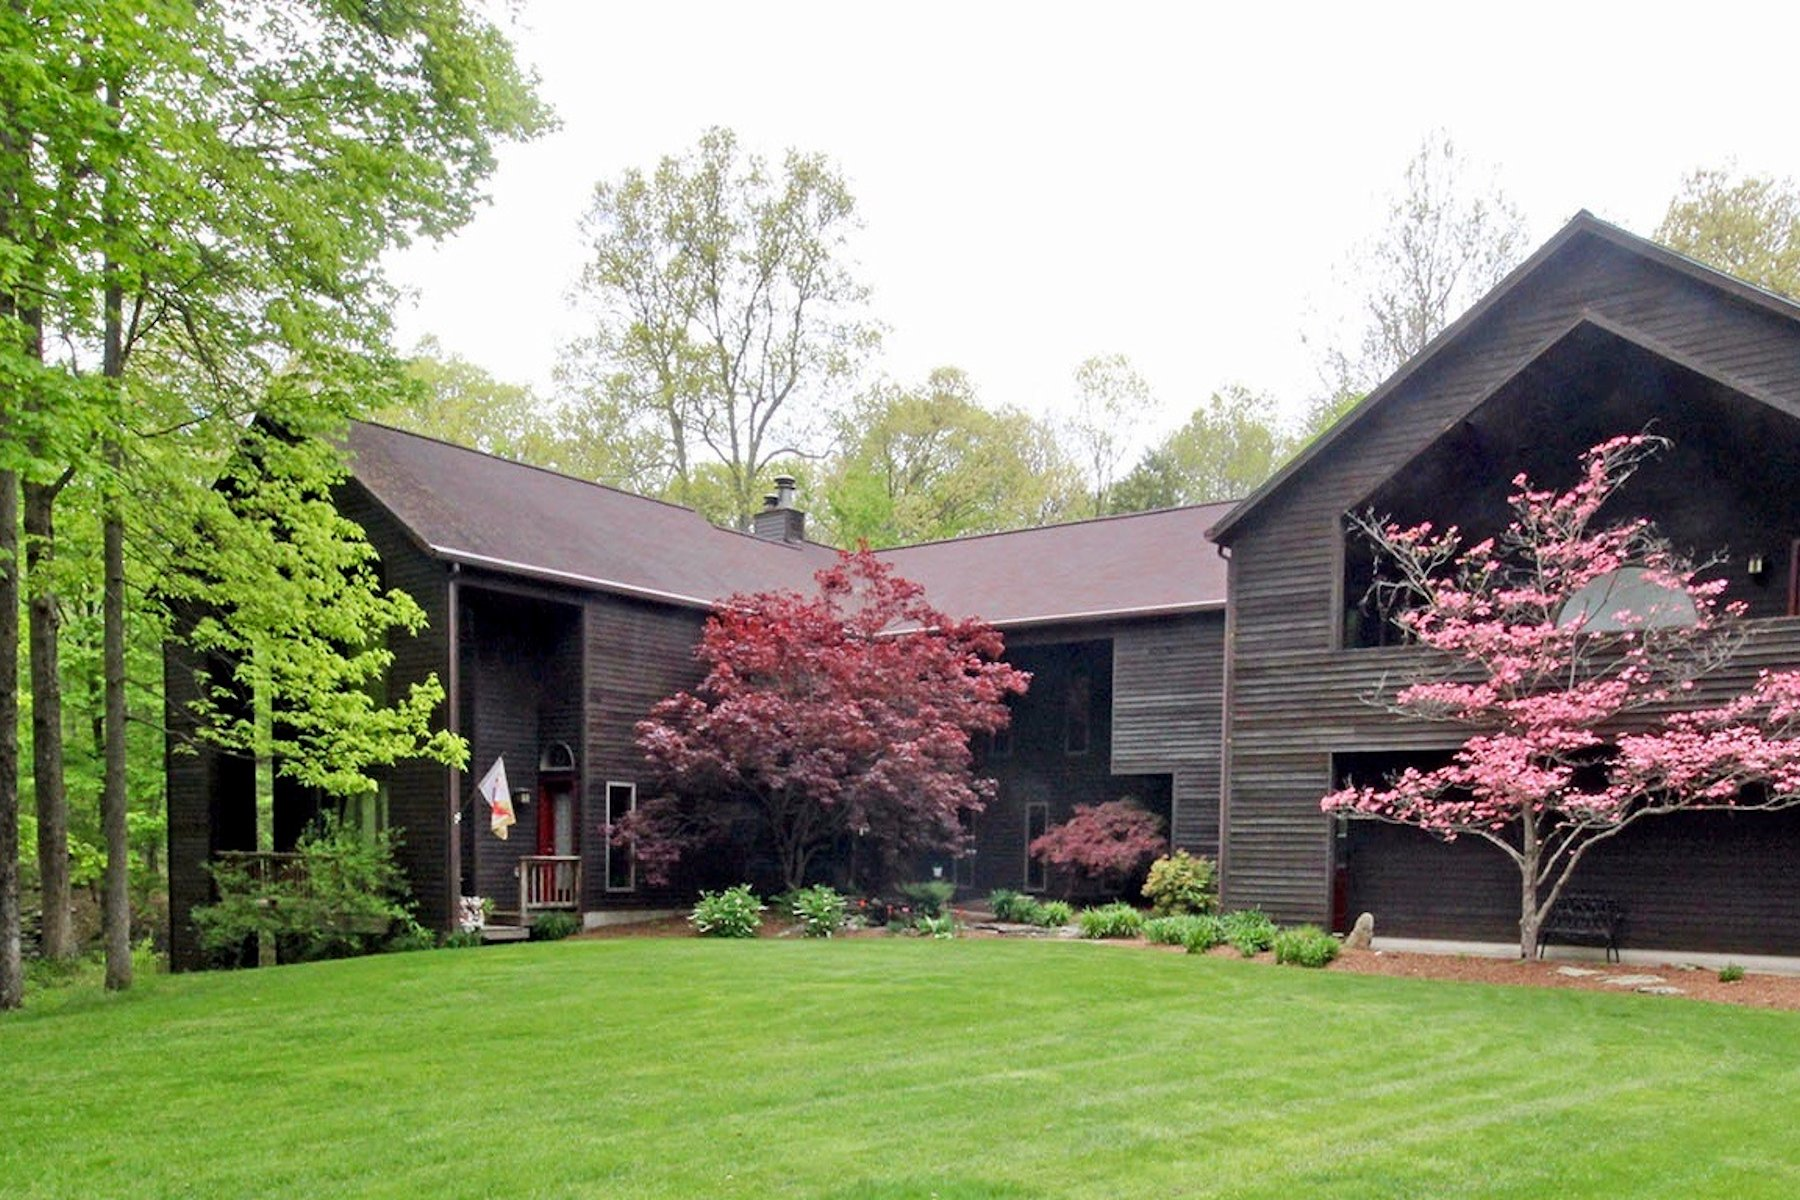 Single Family Home for Sale at Serene Privacy 16 Winston Drive Rhinebeck, New York 12572 United States